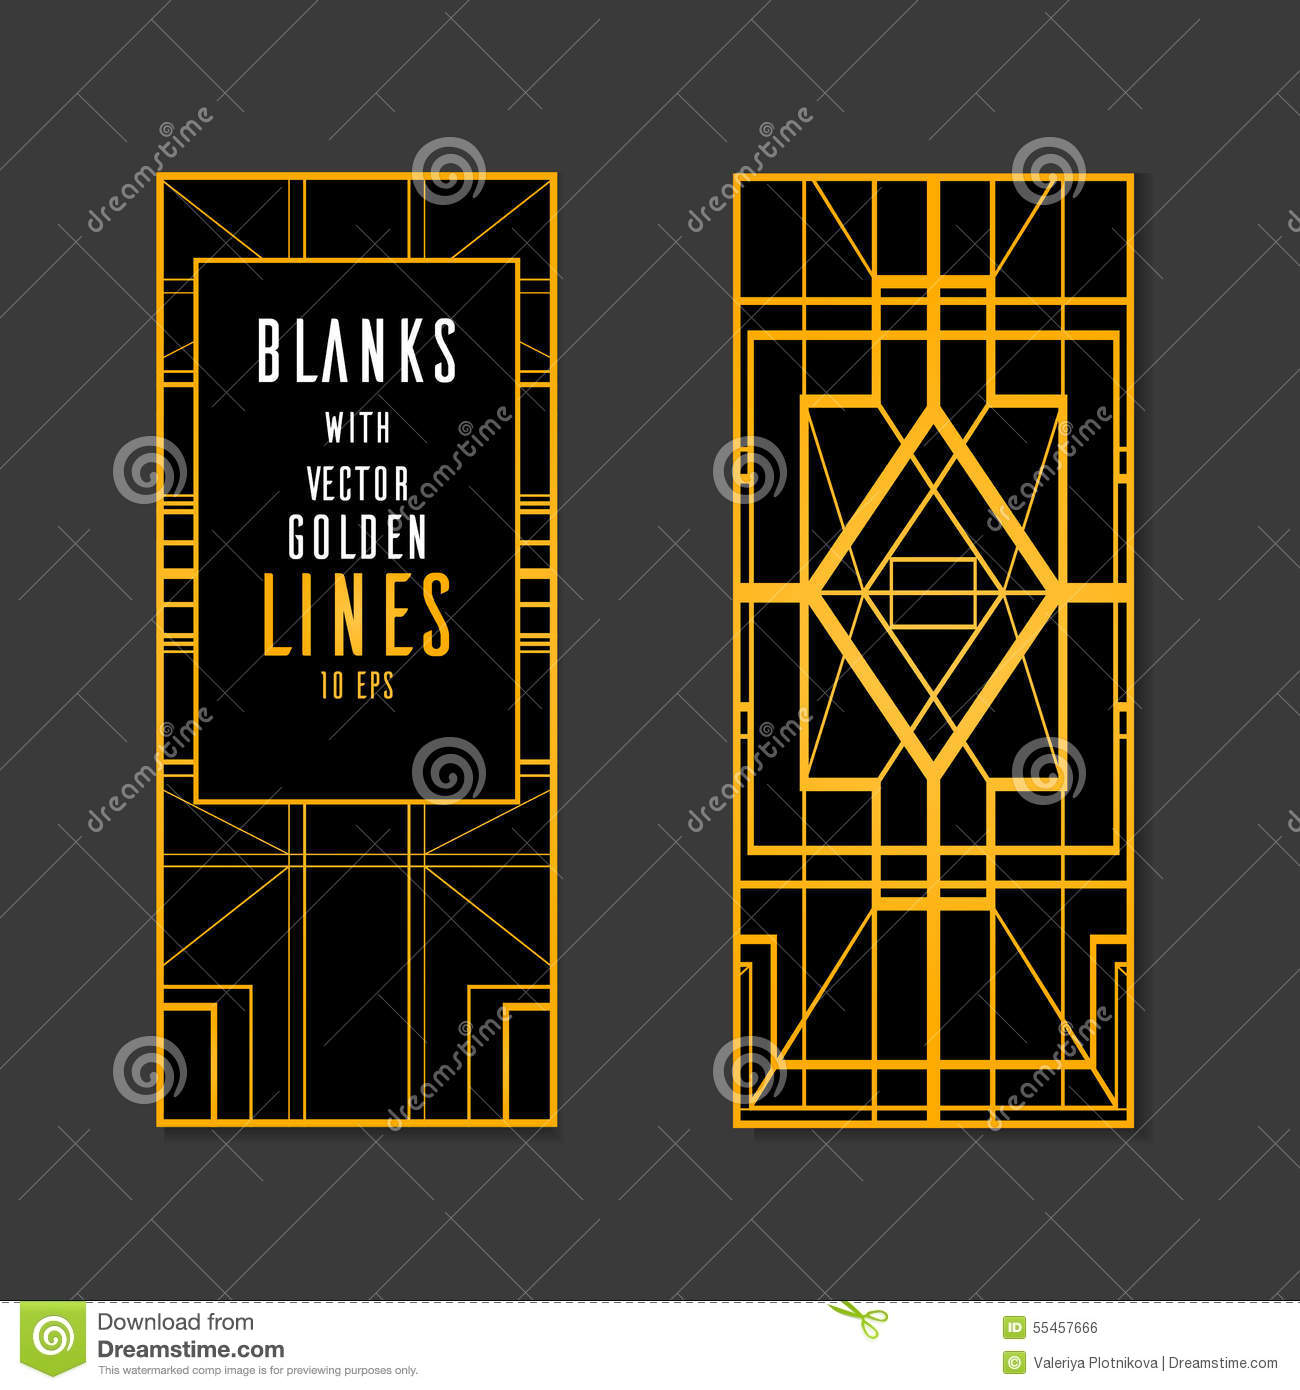 Great gatsby invitation template 47062 17 new the great gatsby party free gatsby invitation template gidiyeredformapoliticaco template vector blank place text gold lines reverse side style gatsby stopboris Image collections